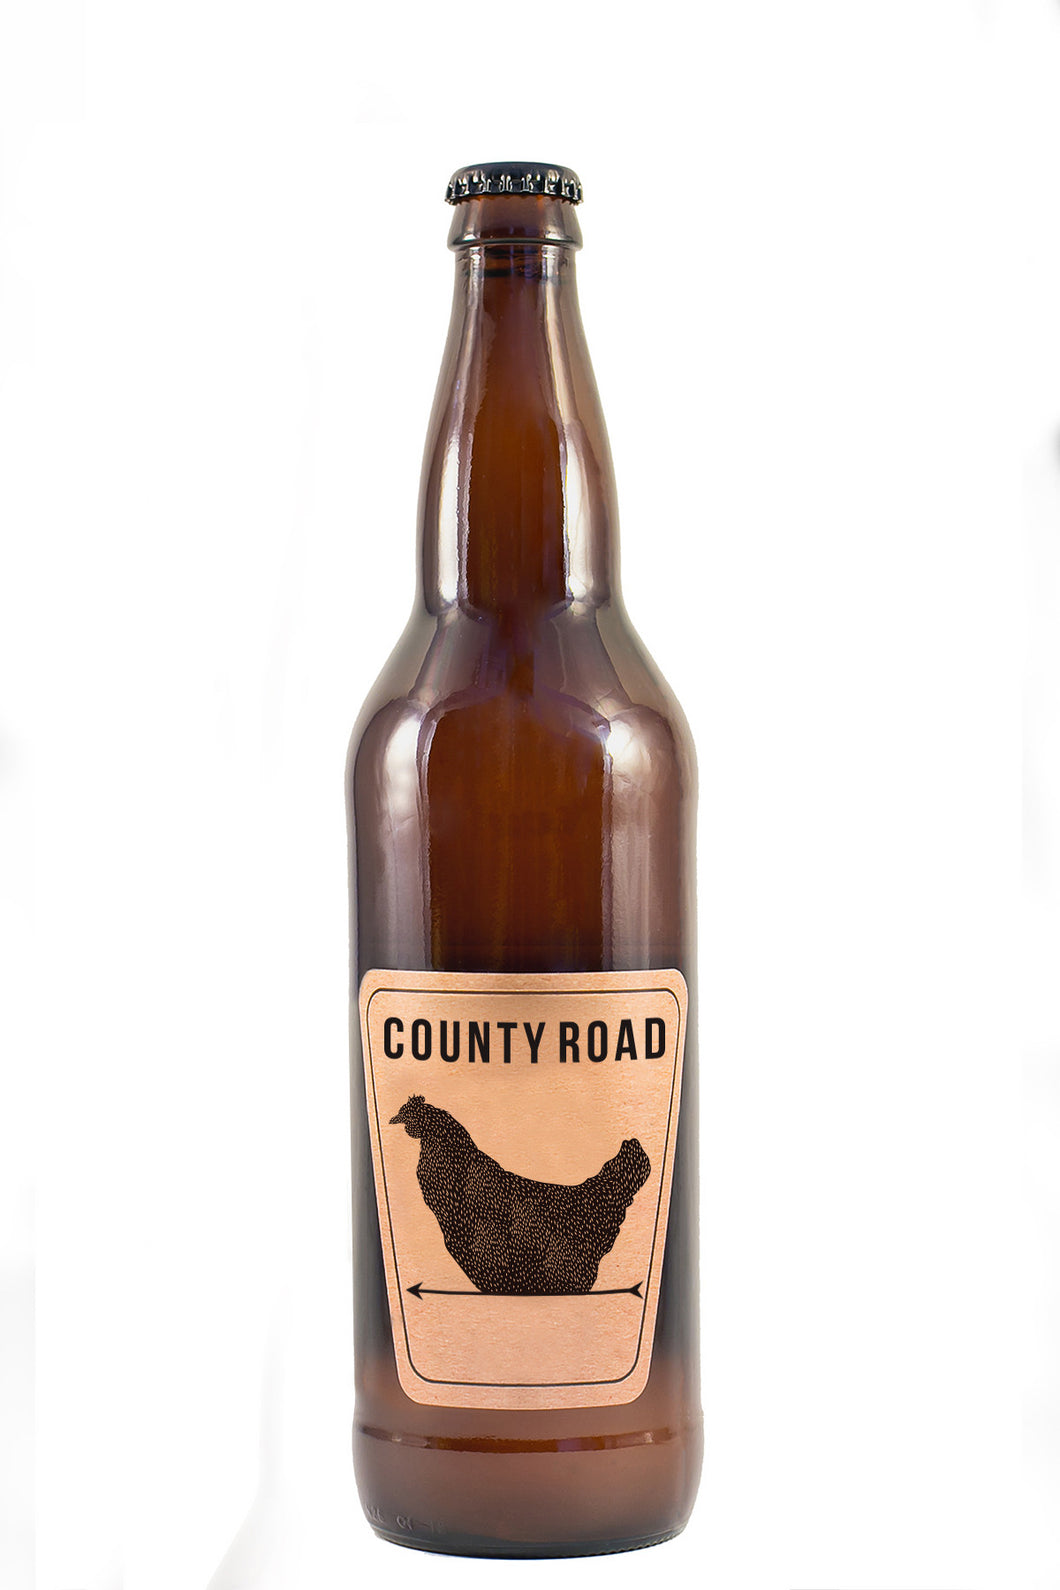 12 PACK OF COUNTY ROAD BEER (MIXED CASE)